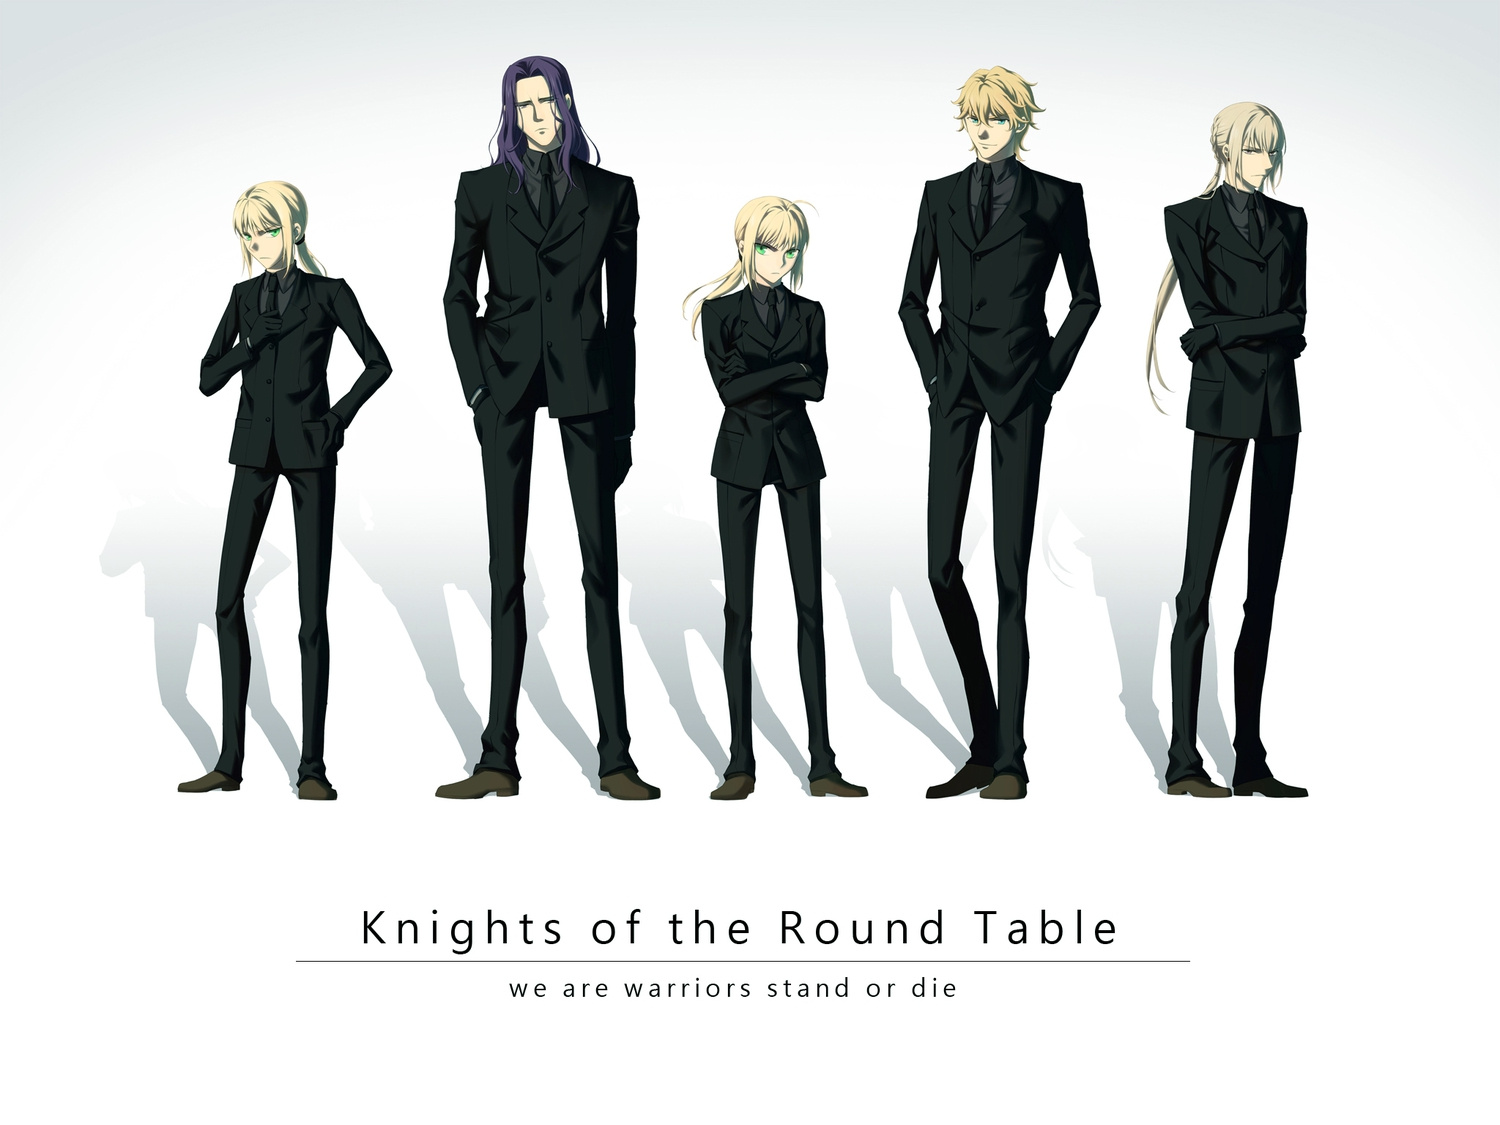 artoria_pendragon_(all) bedivere fate/apocrypha fate/extra fate_(series) fate/stay_night fate/zero gawain ghost_in_the_shell:_stand_alone_complex lancelot_(fate) male mordred saber